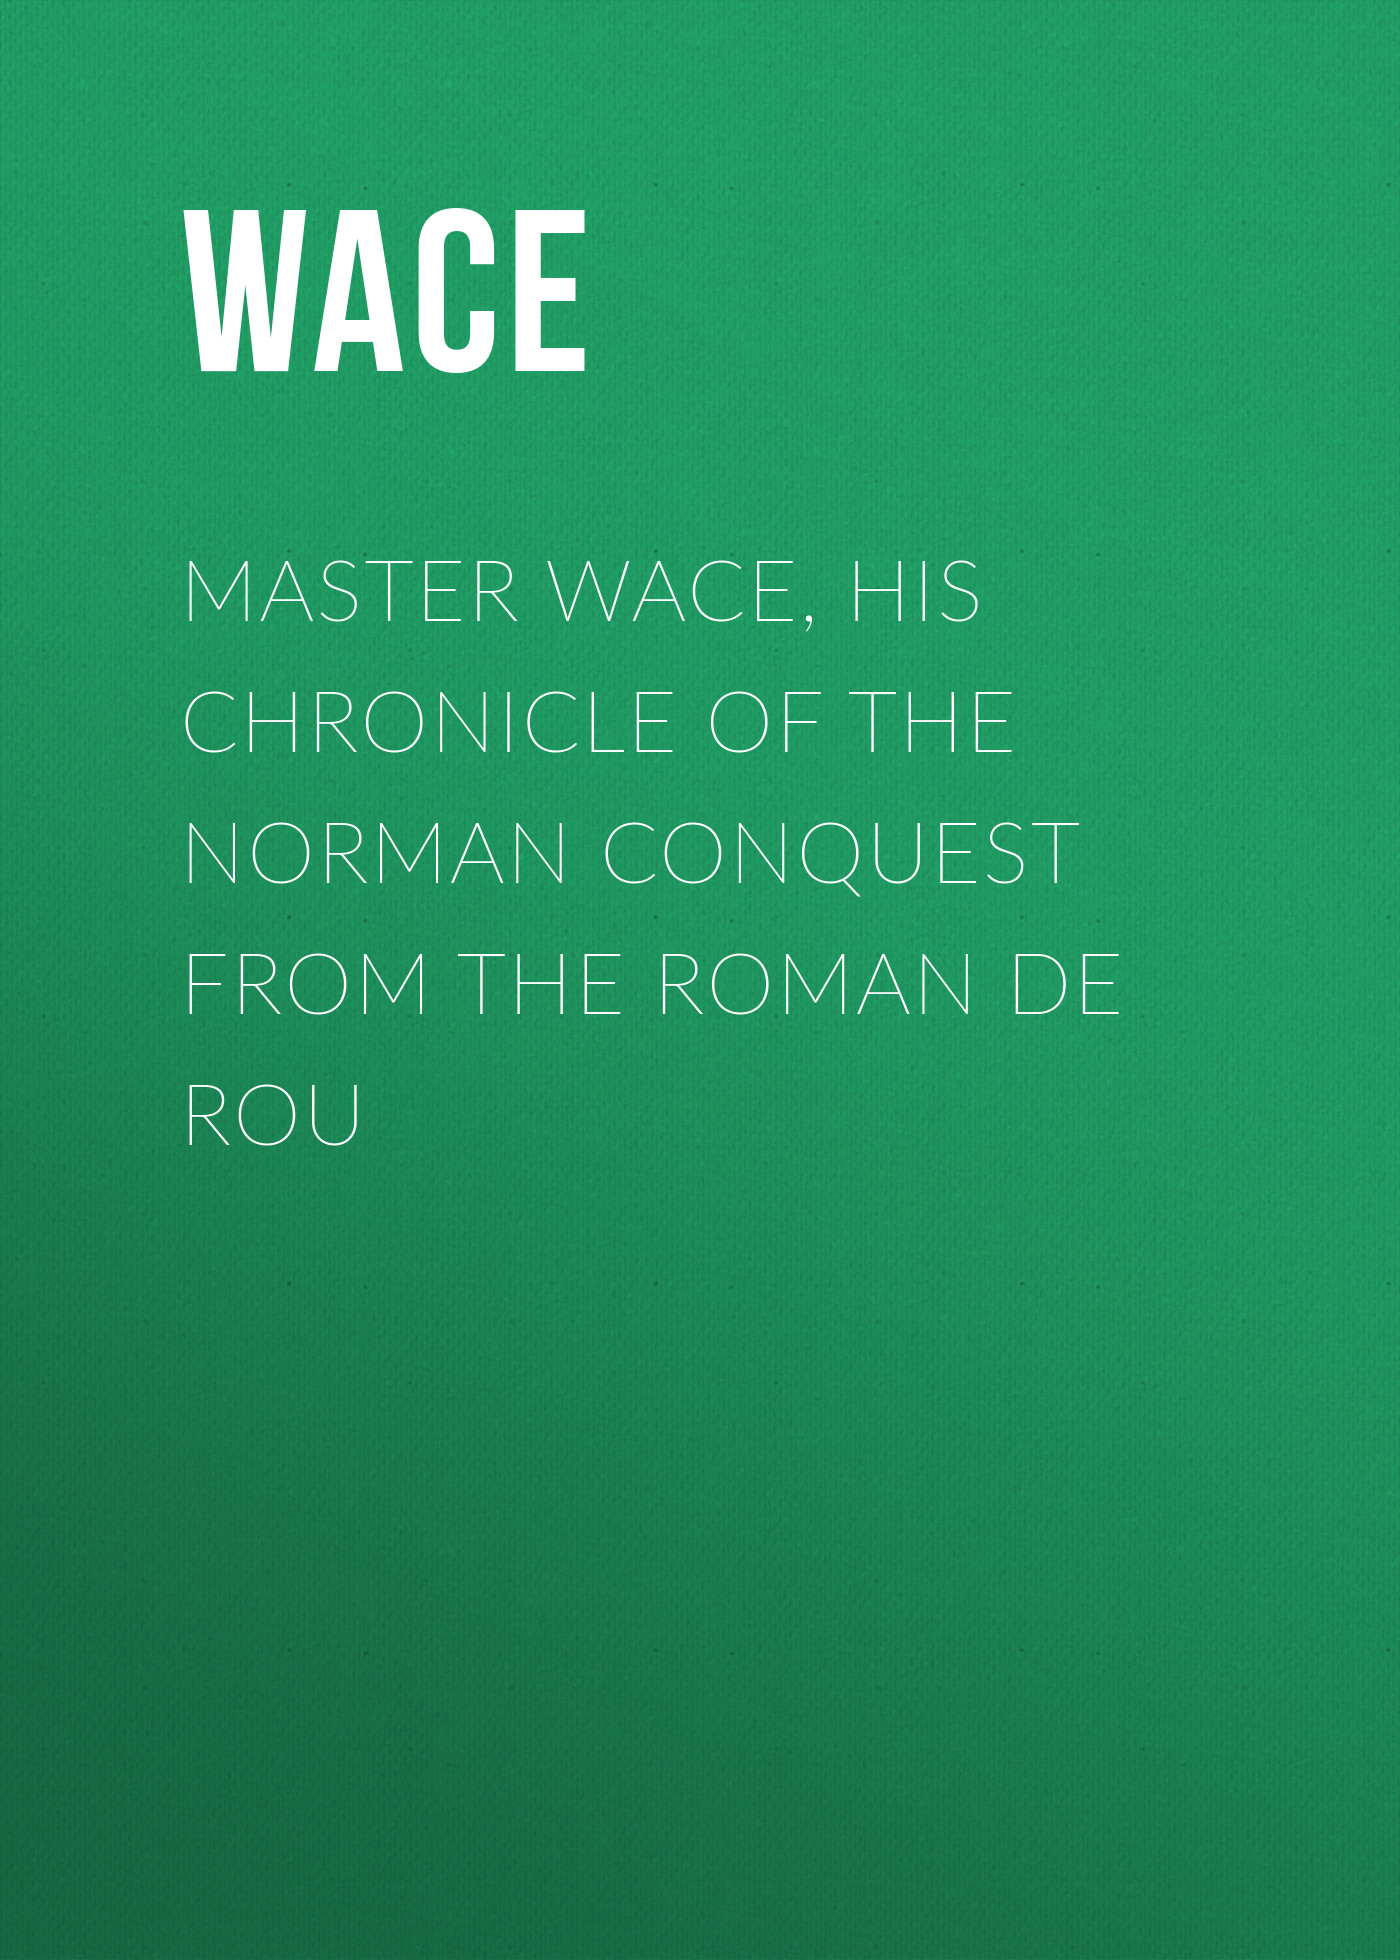 Wace Master Wace, His Chronicle of the Norman Conquest From the Roman De Rou